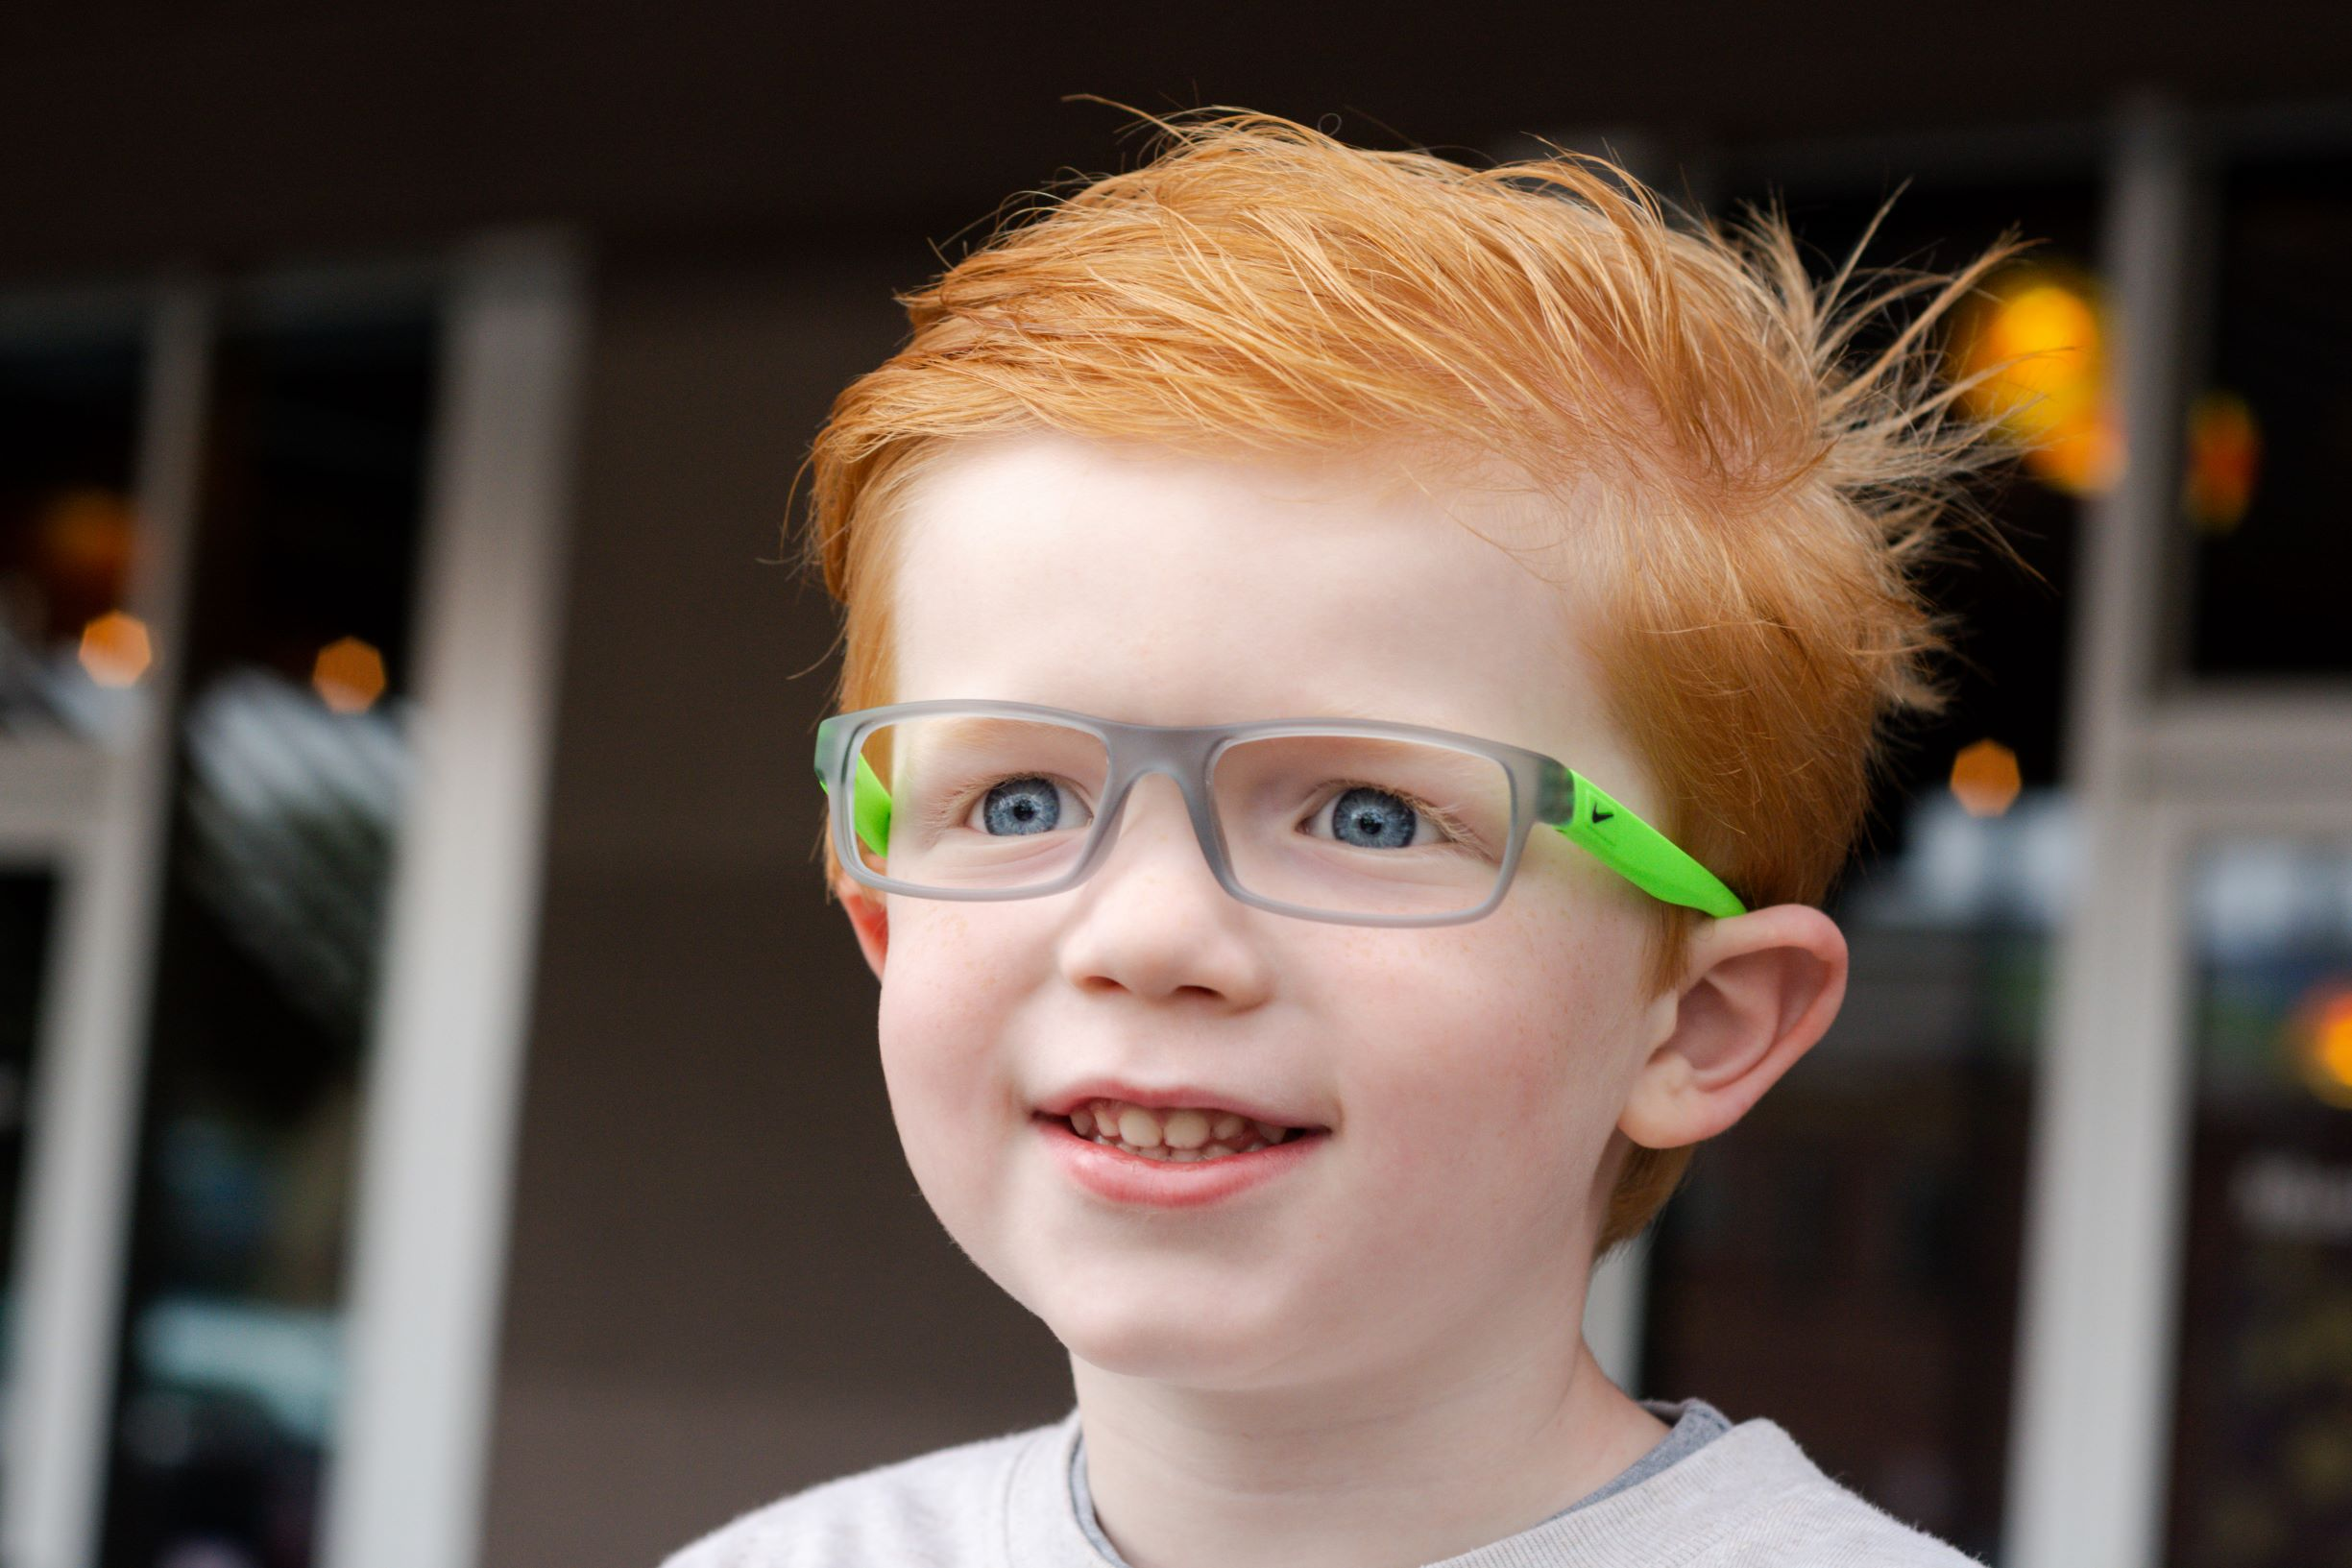 When Should My Child Get Their Vision Checked?